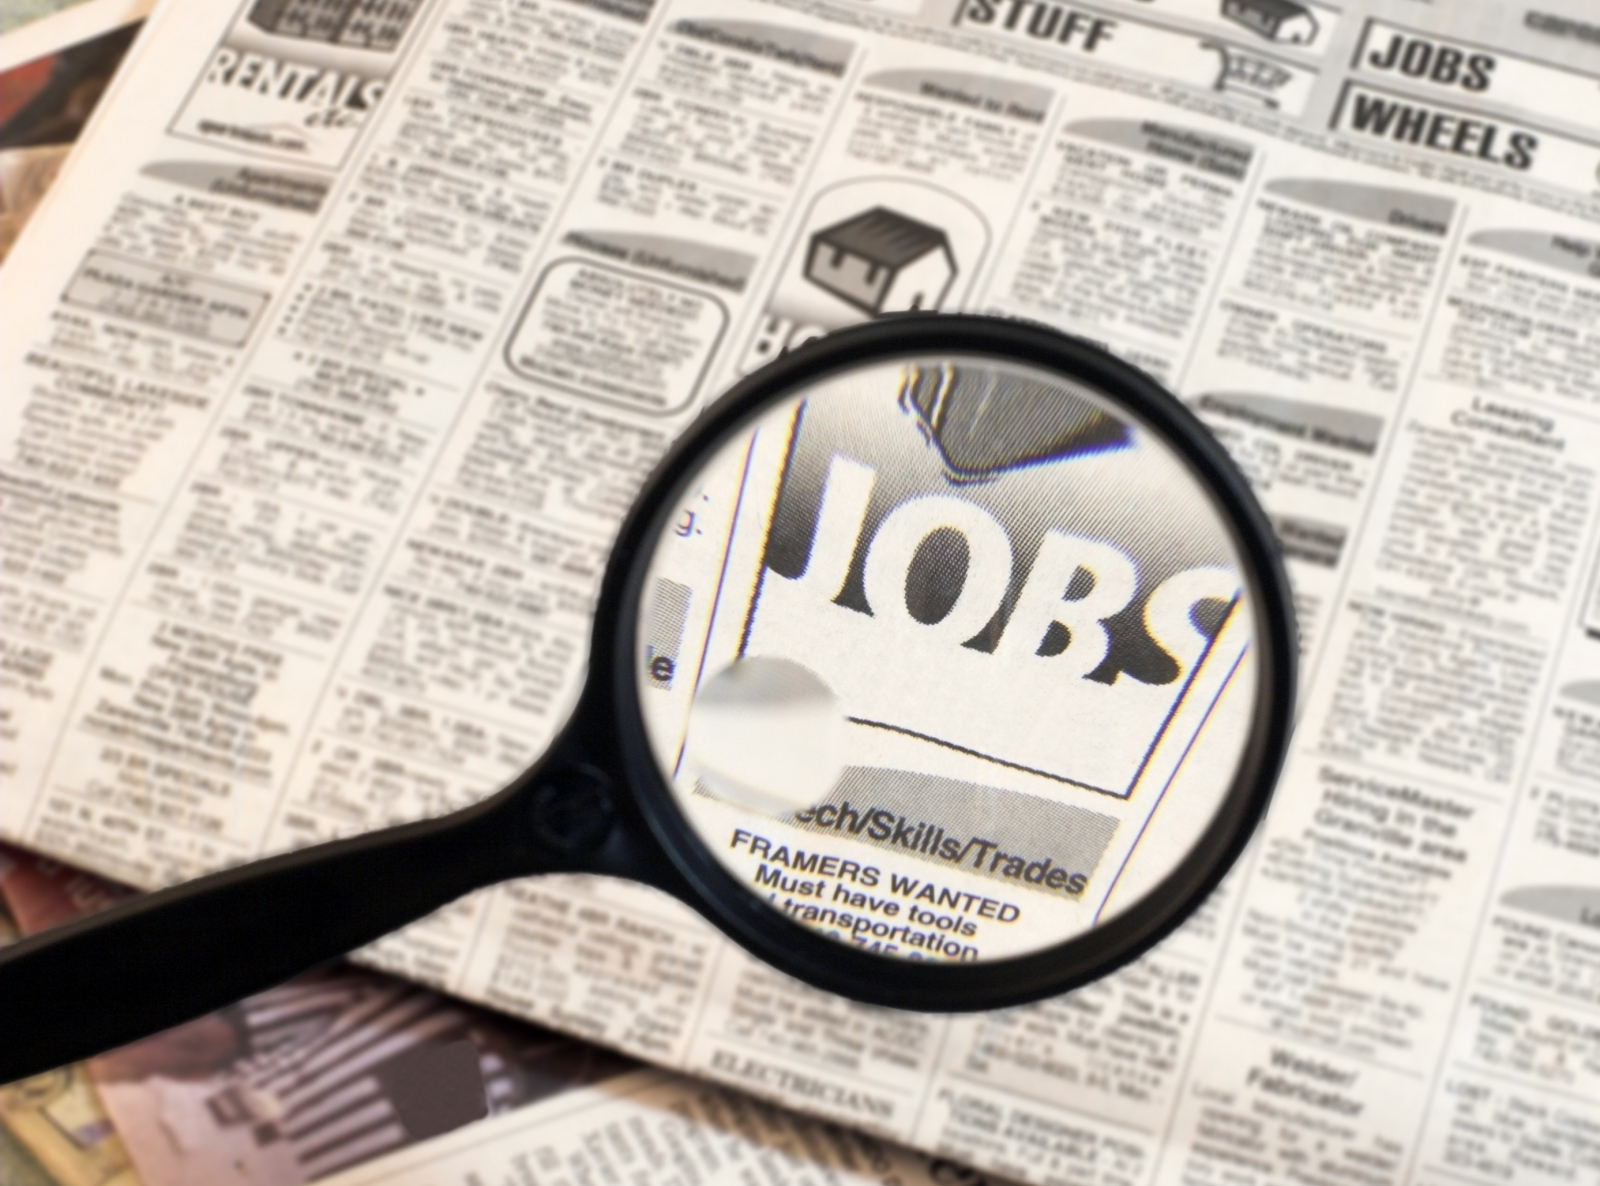 GREEN SHOOTS: A fall in the number of Jobseekers Allowance cla